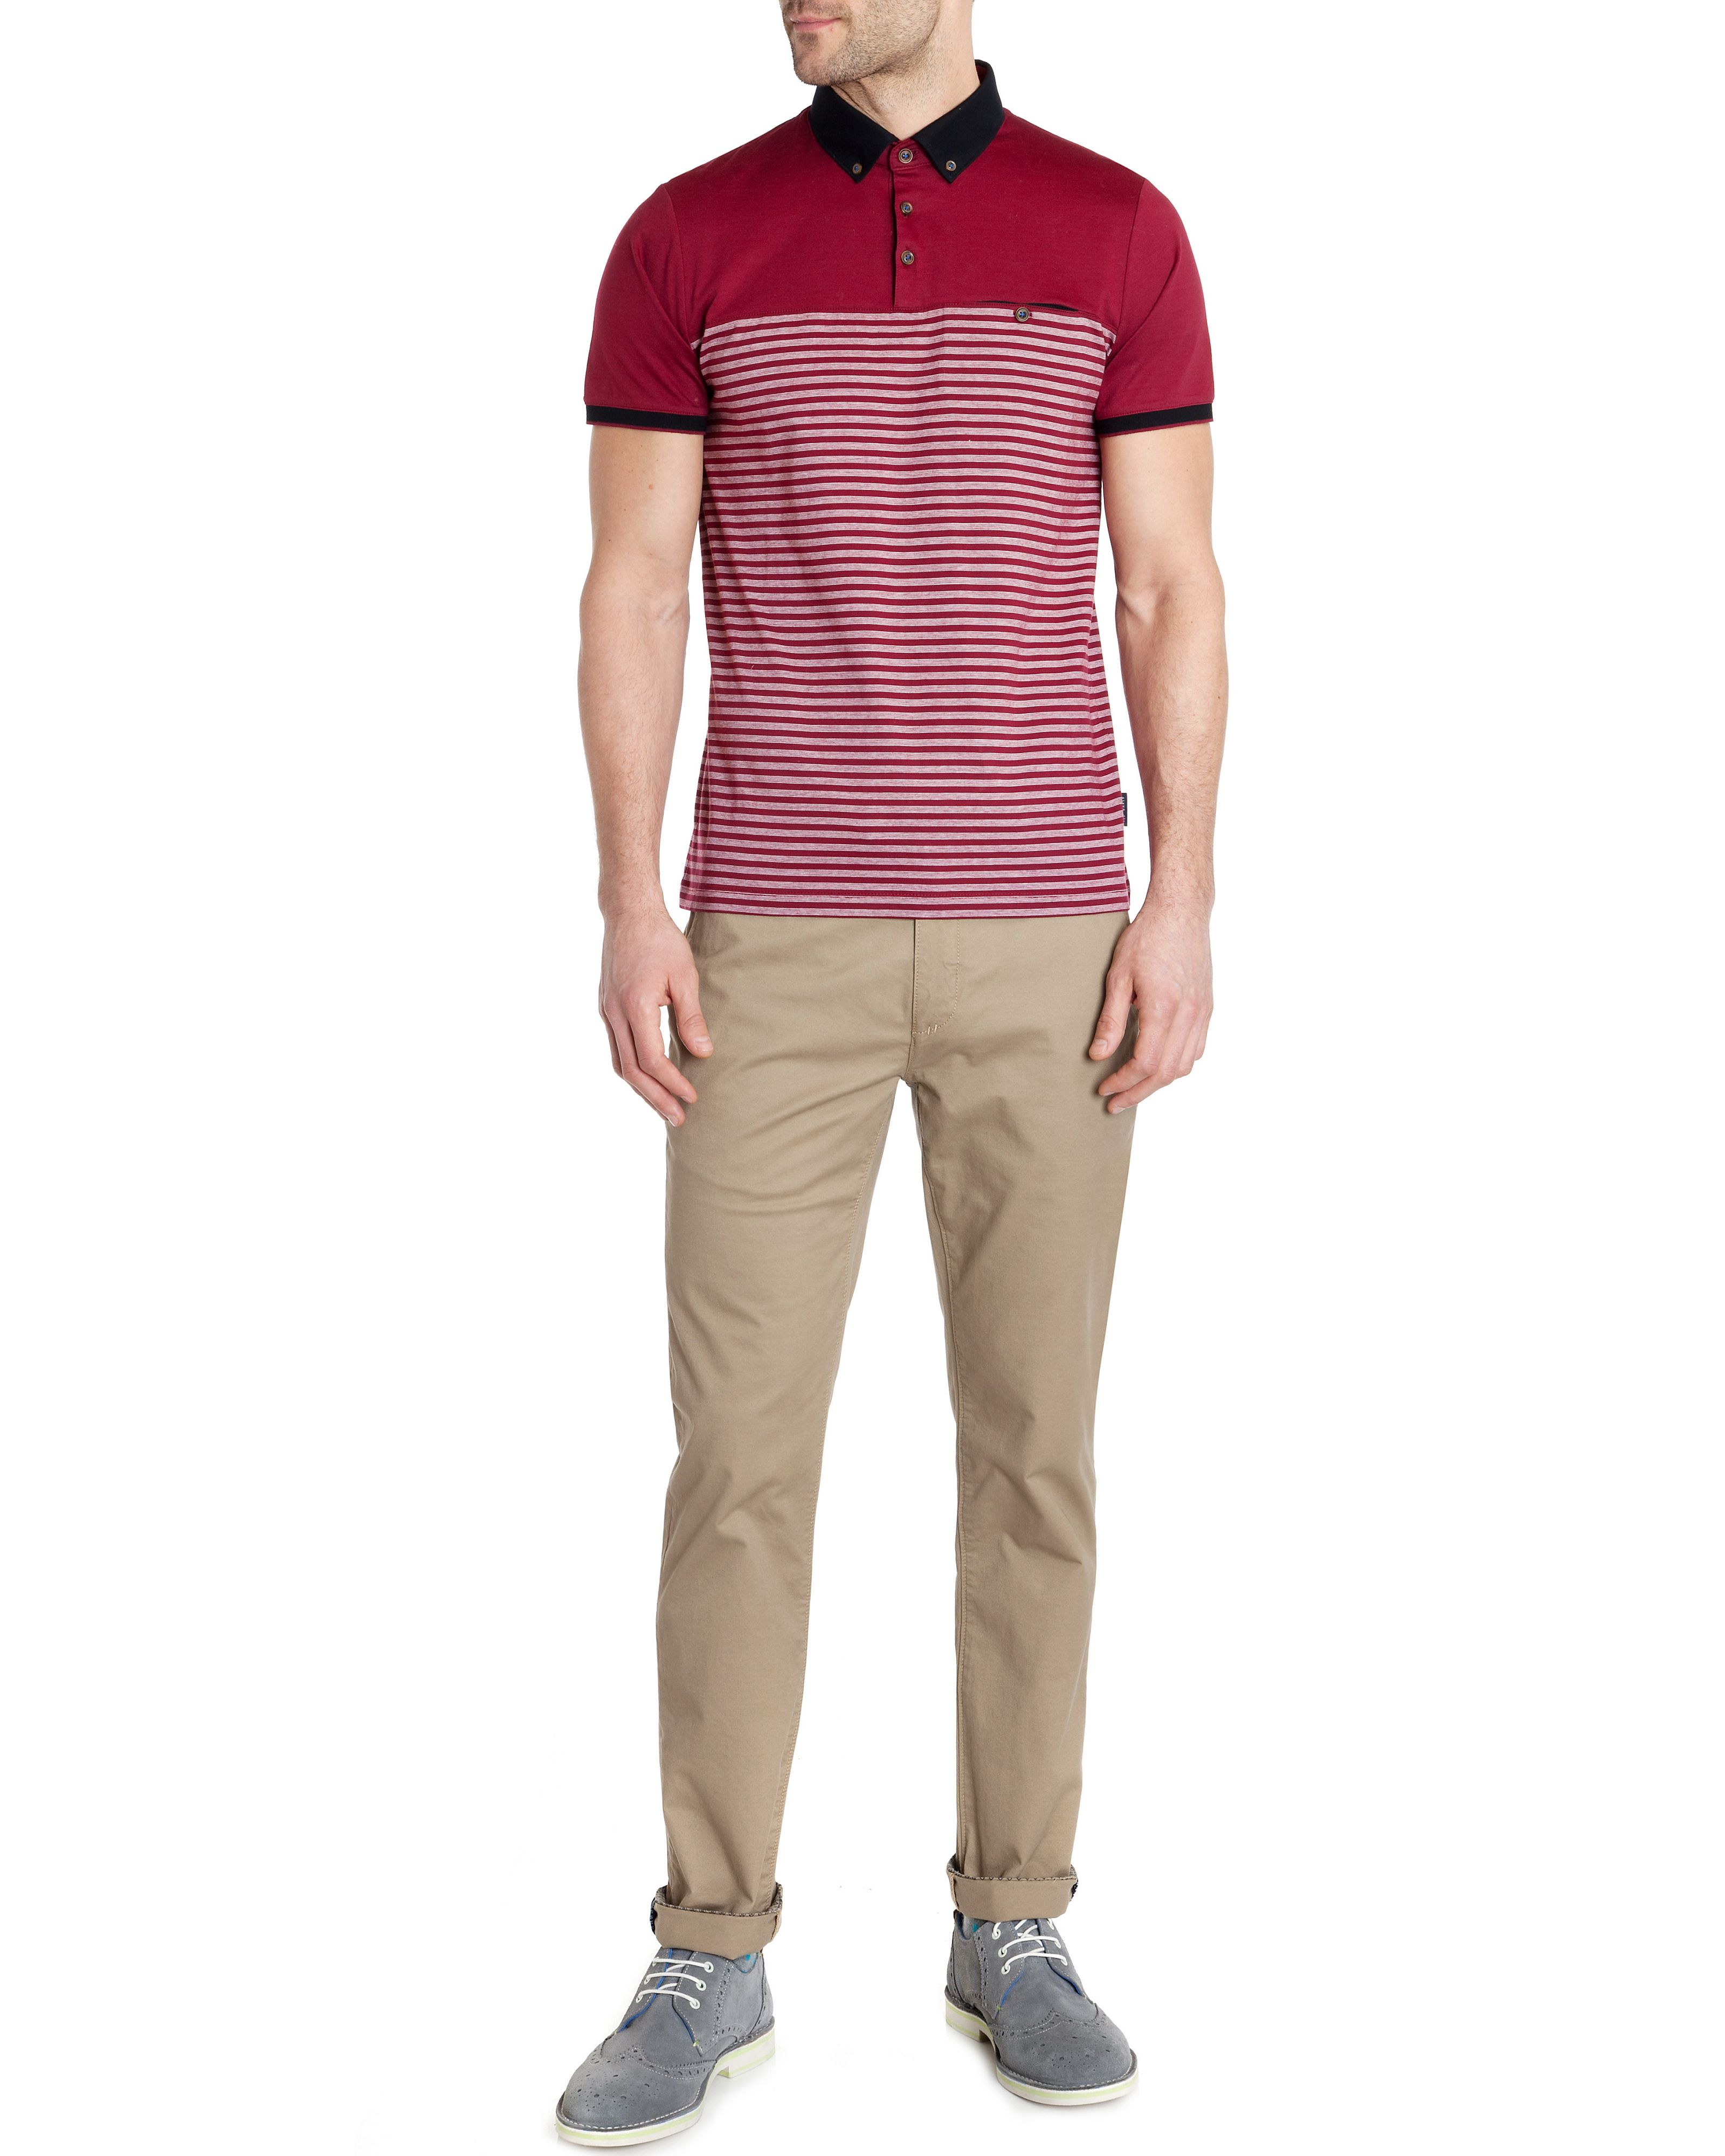 Sunnset striped polo